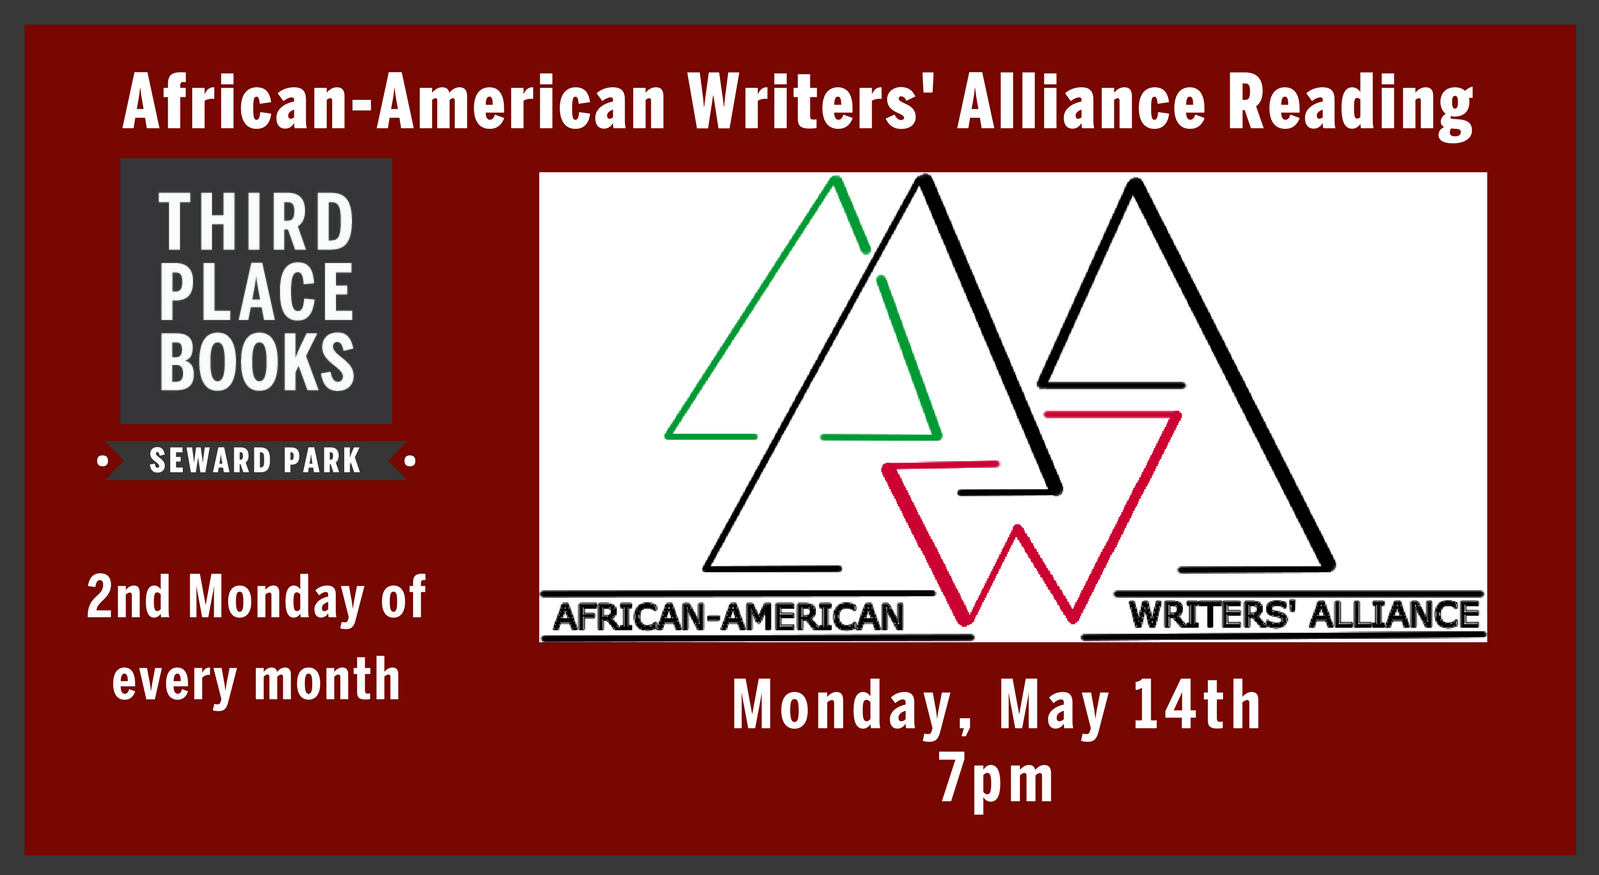 African-American Writers' Alliance Reading on May 14th at 7pm